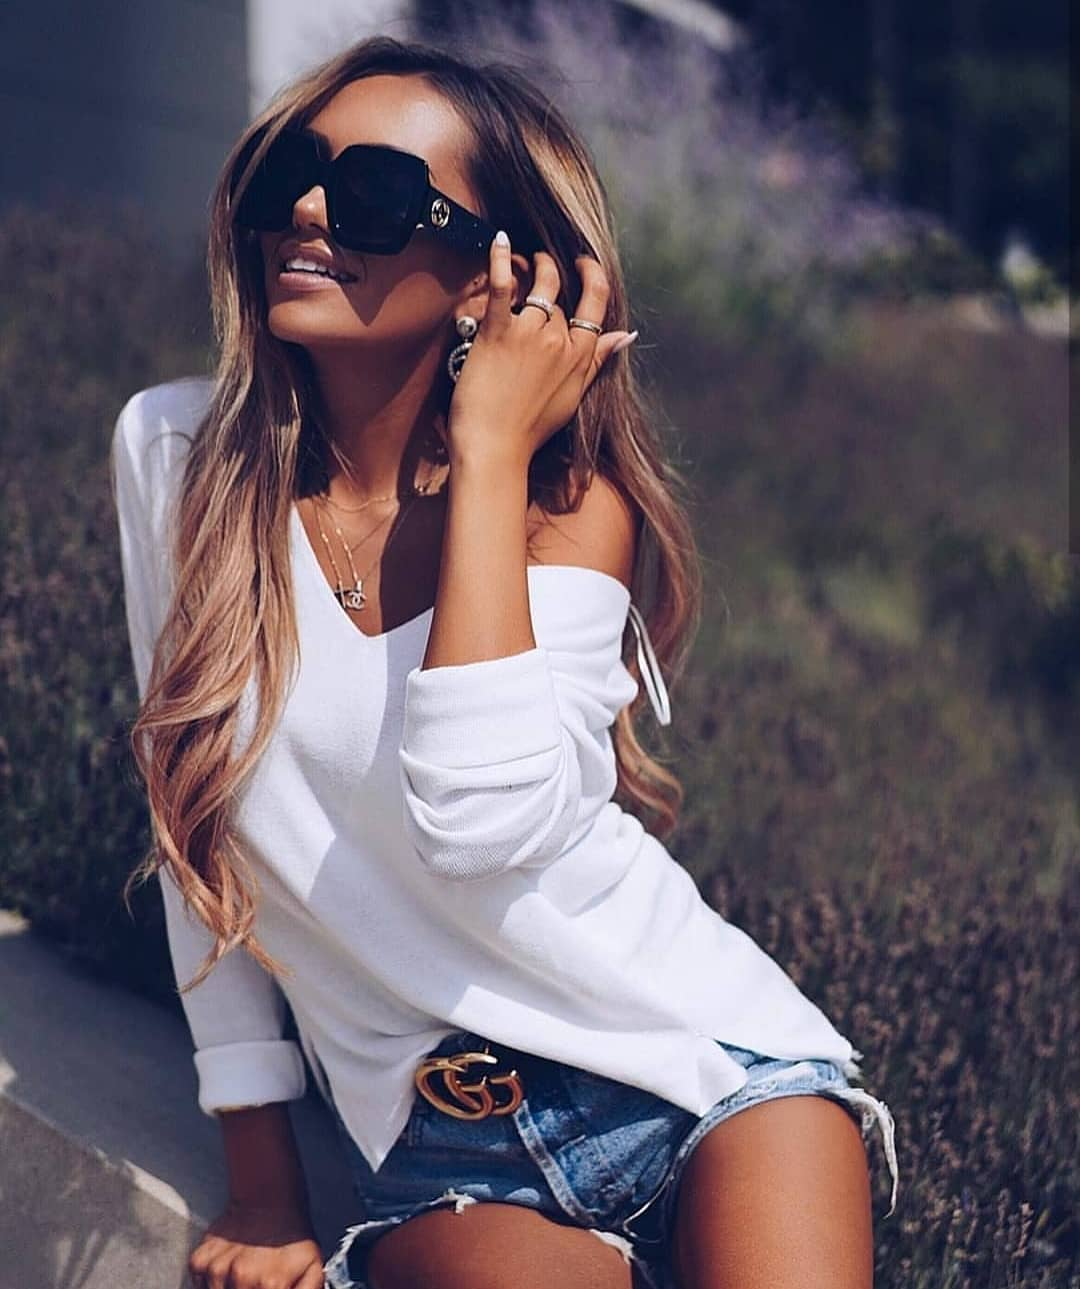 Off-Shoulder Slouchy Top In White And Wash Blue Denim Shorts For Summer 2019